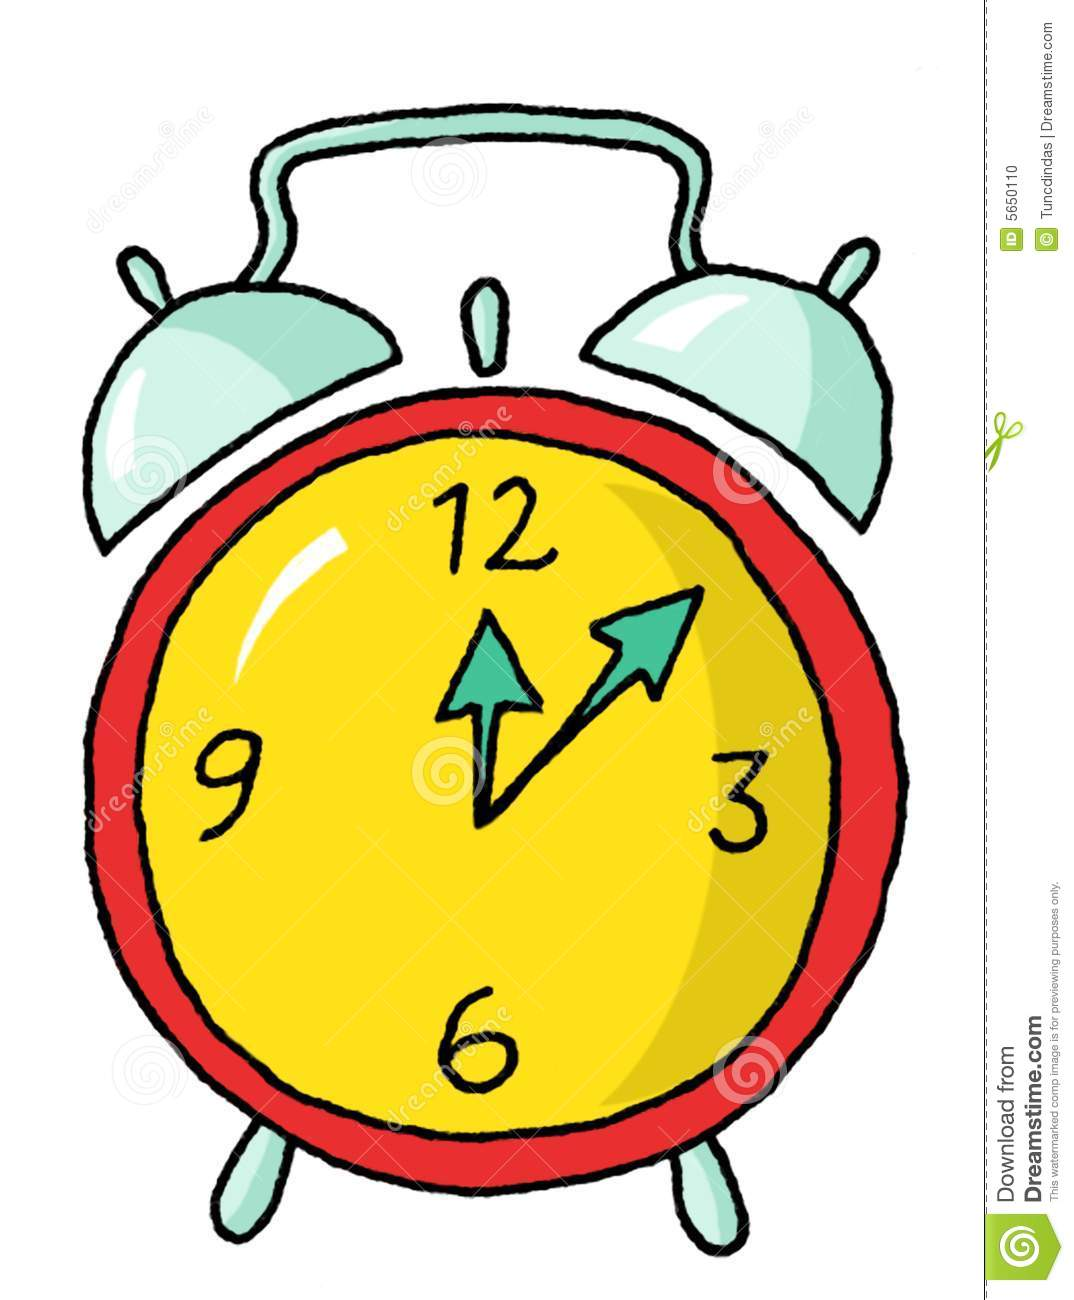 alarm clock 01 clipart panda free clipart images rh clipartpanda com alarm clock clip art free alarm clock clipart black and white